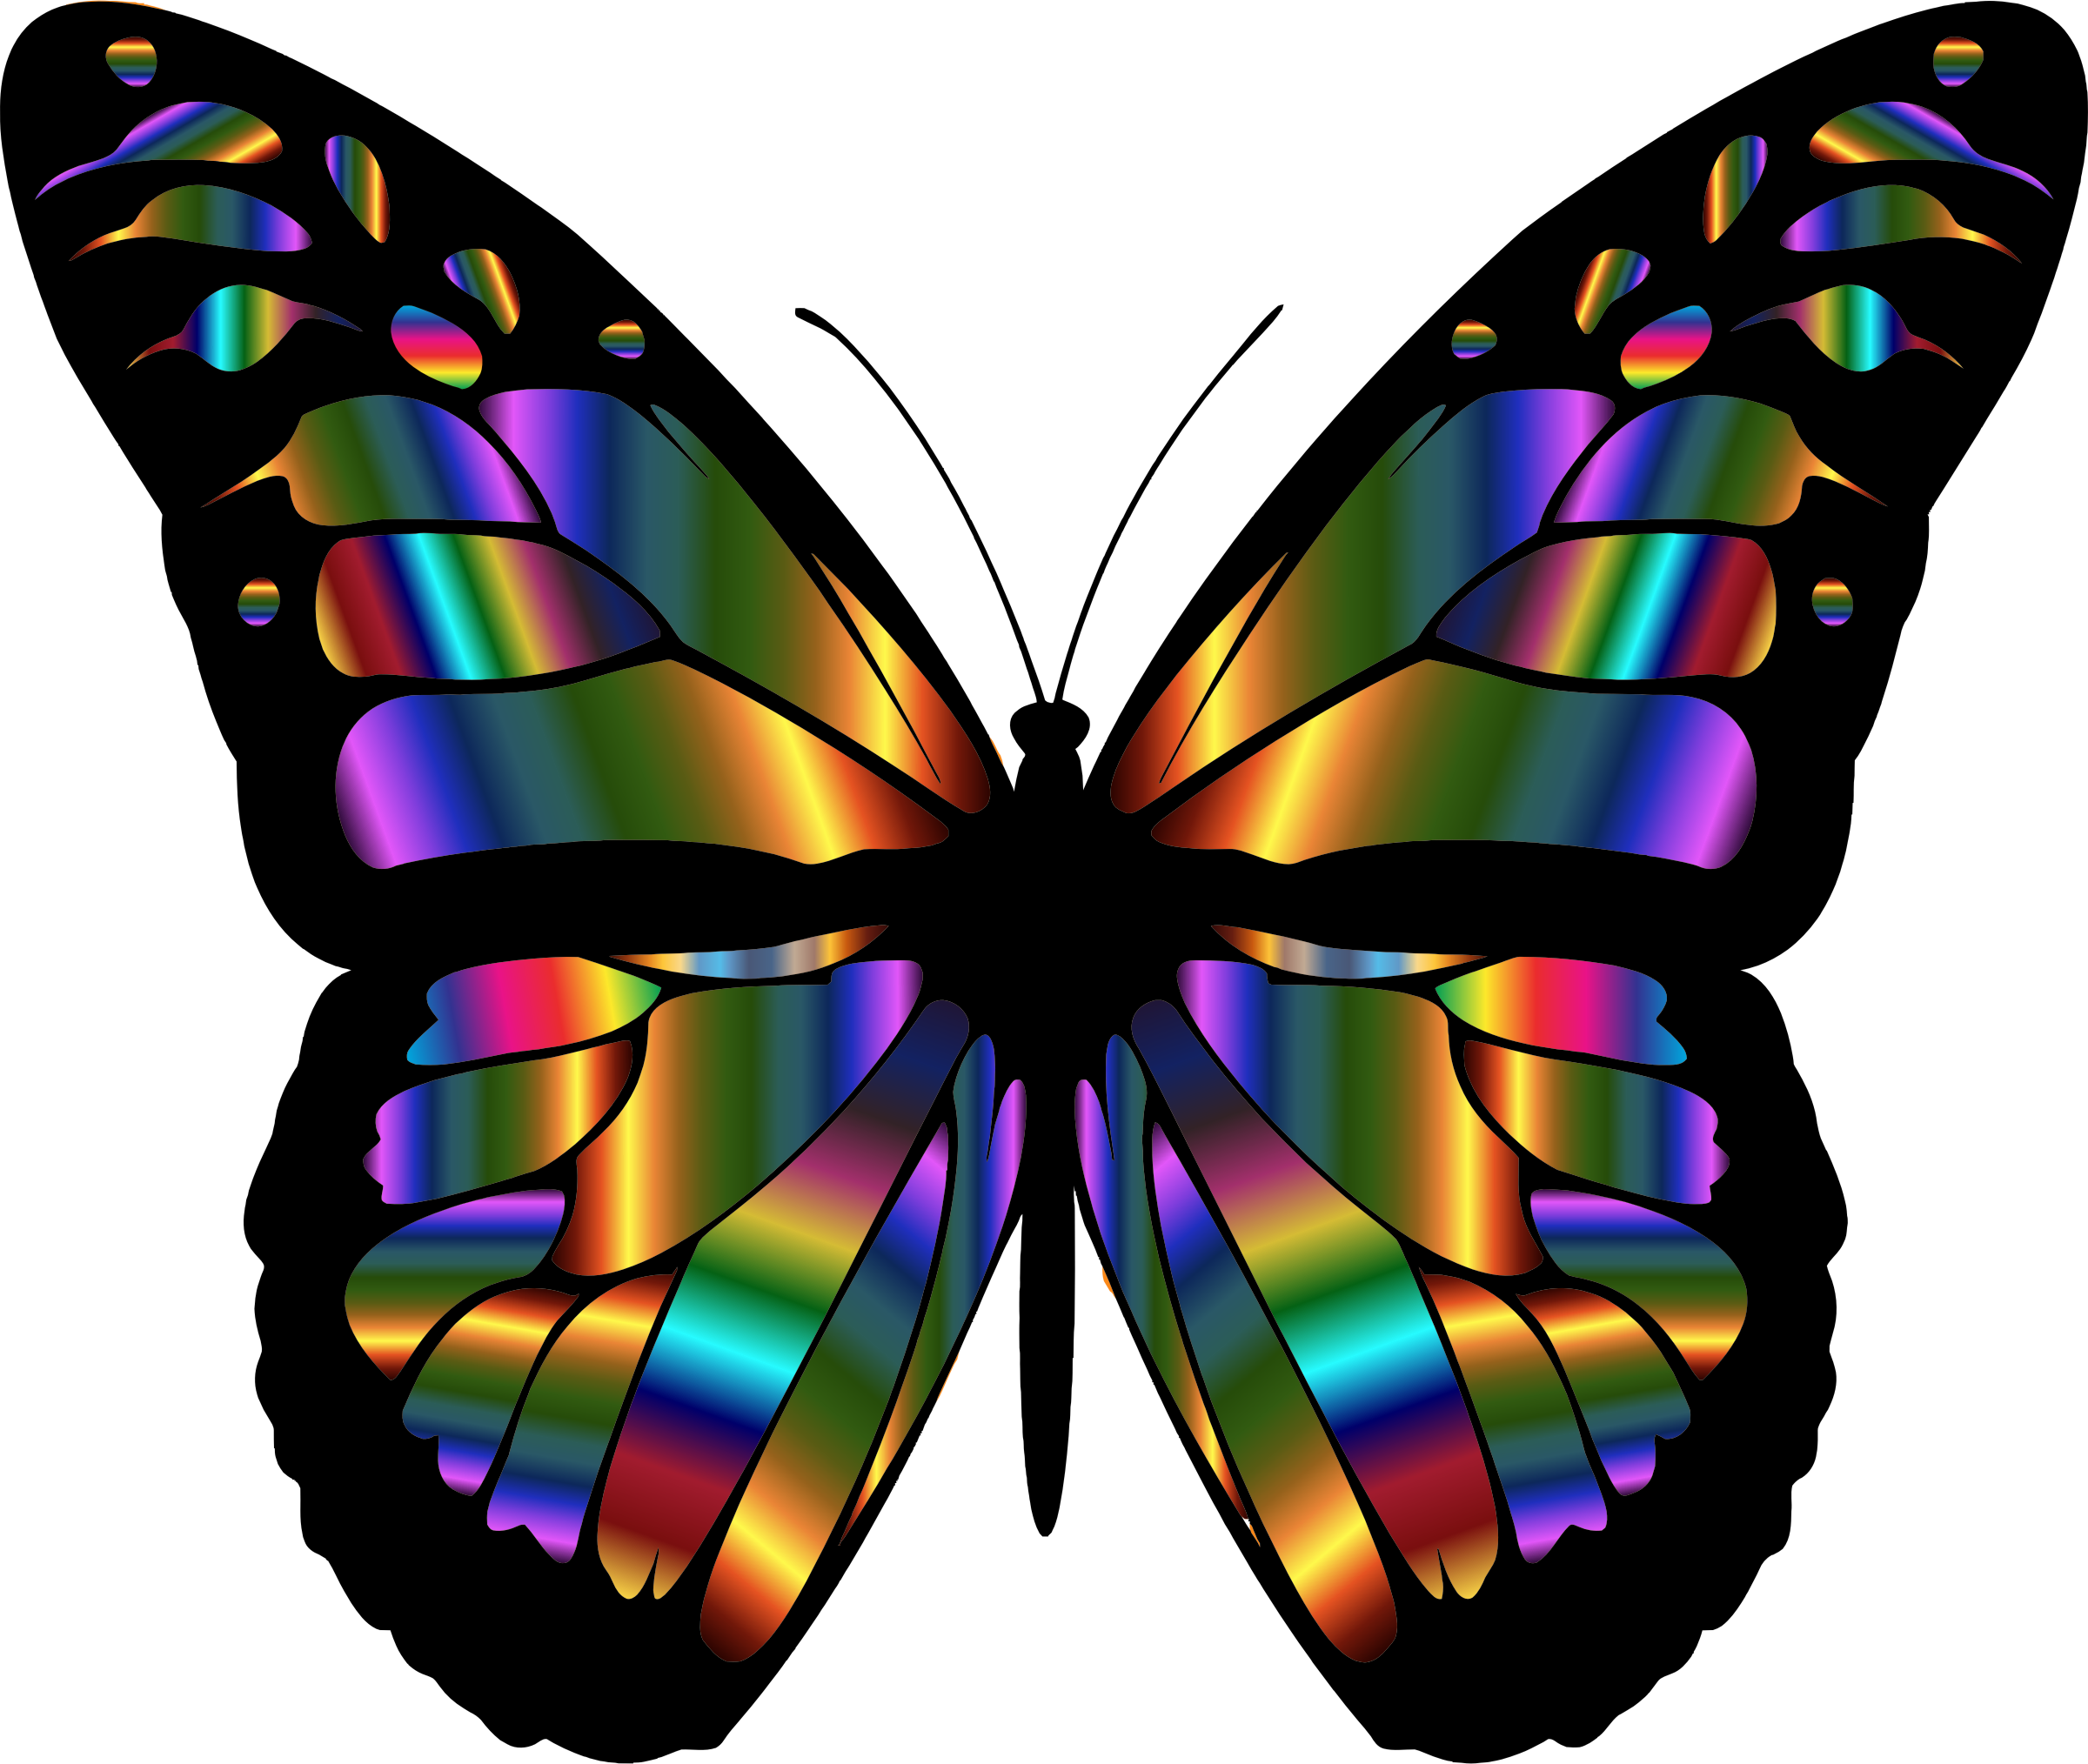 2400x2028 Iridescent Monarch Butterfly By @gdj, A Colorful Iridescent